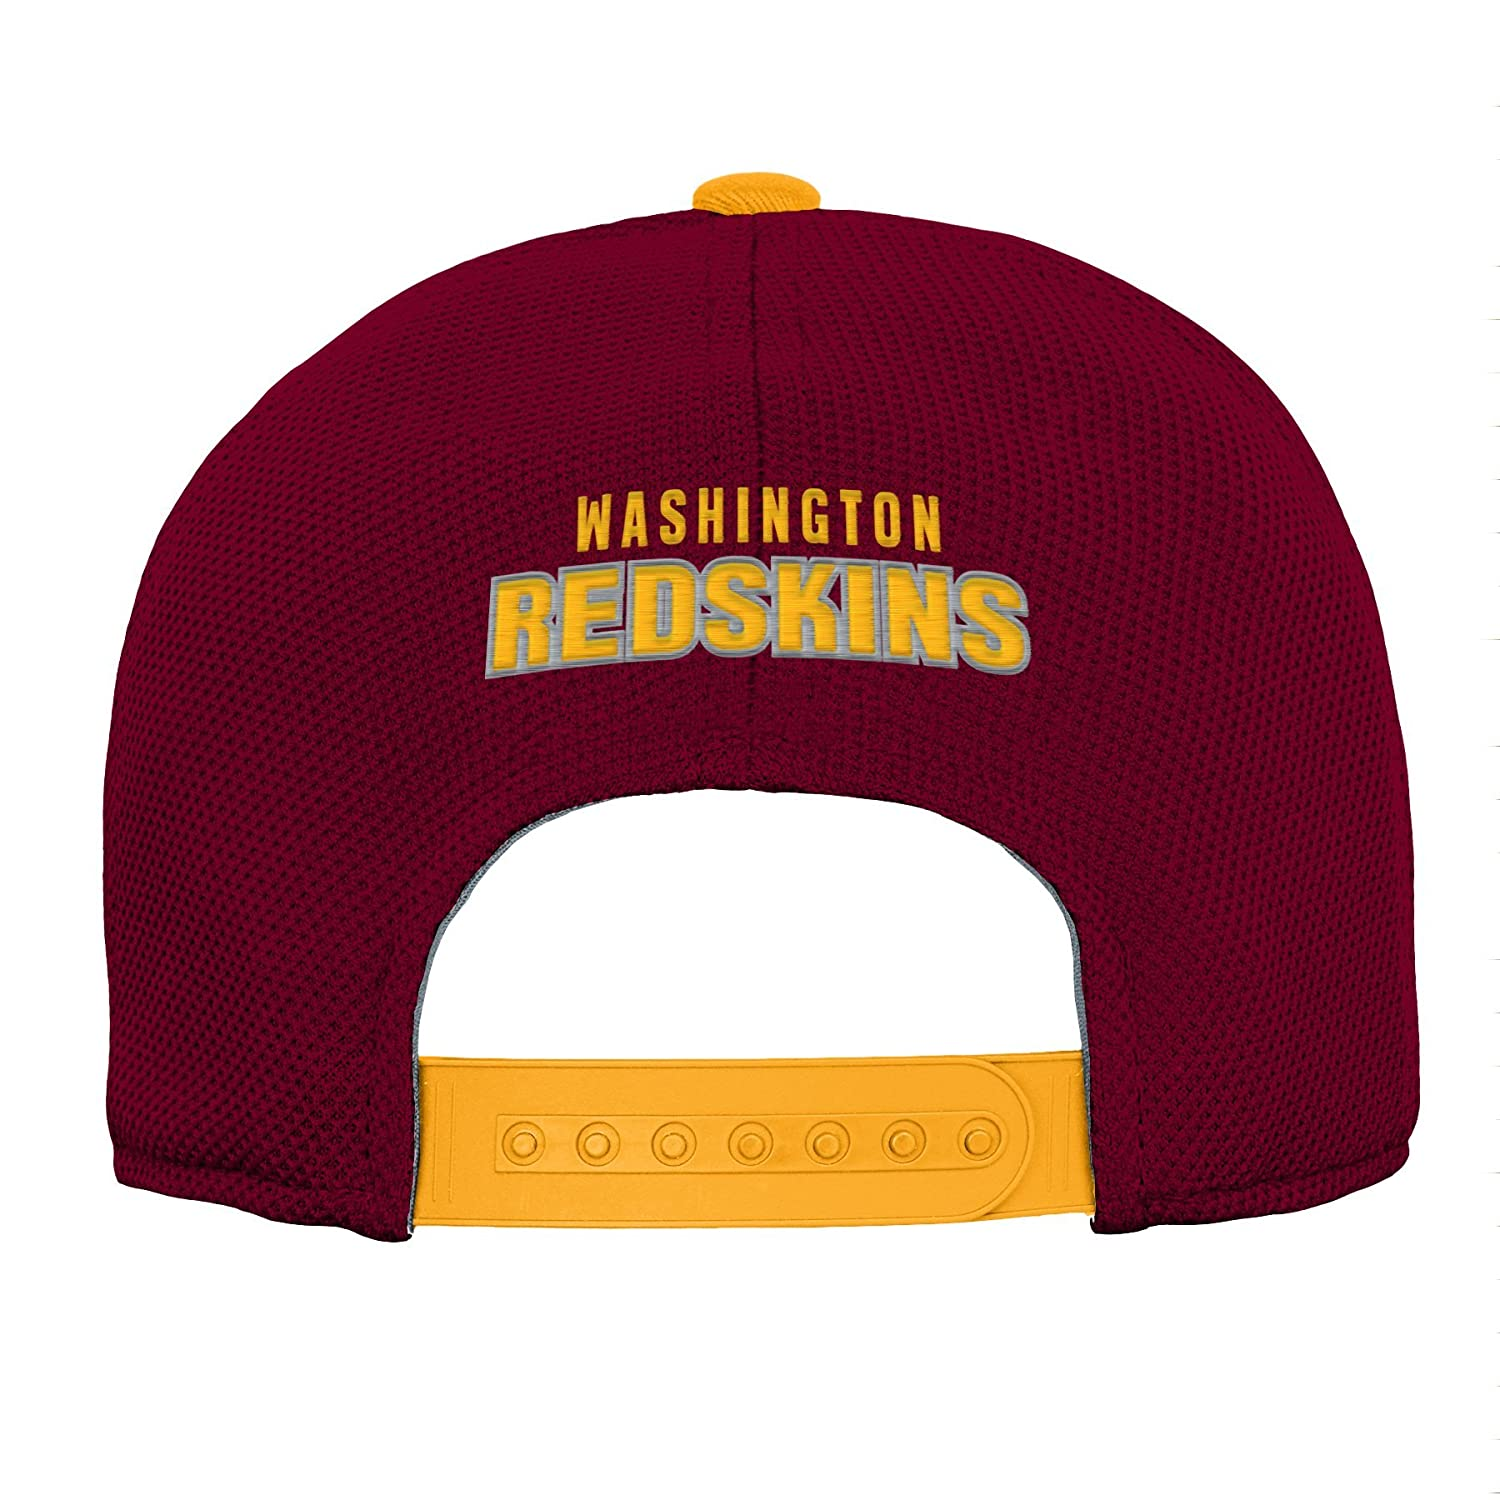 Youth One Size Burgundy NFL Washington Redskins Youth Outerstuff Velocity Structured Snap Hat